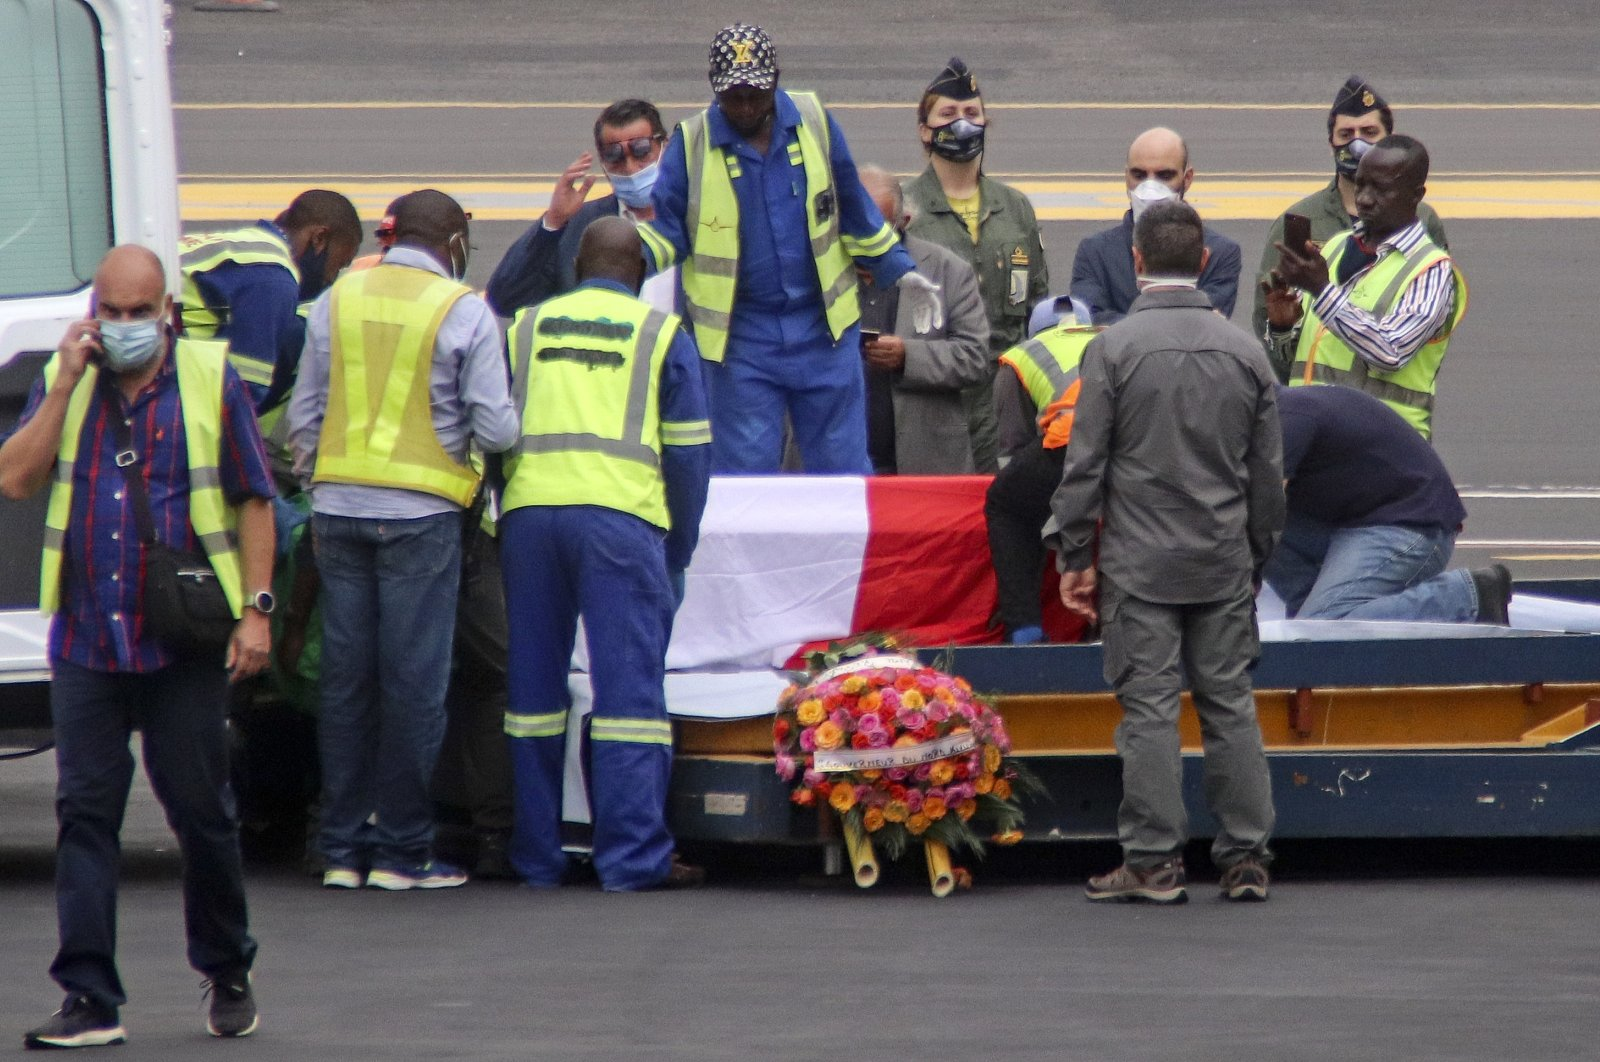 The coffins of Italian ambassador to Congo Luca Attanasio and Carabinieri officer Vittorio Iacovacci, draped with the Italian flag, are prepared to be loaded onto an airplane for repatriation to Italy, at the airport in Goma, North Kivu province, Congo, Feb. 23, 2021. (AP Photo)